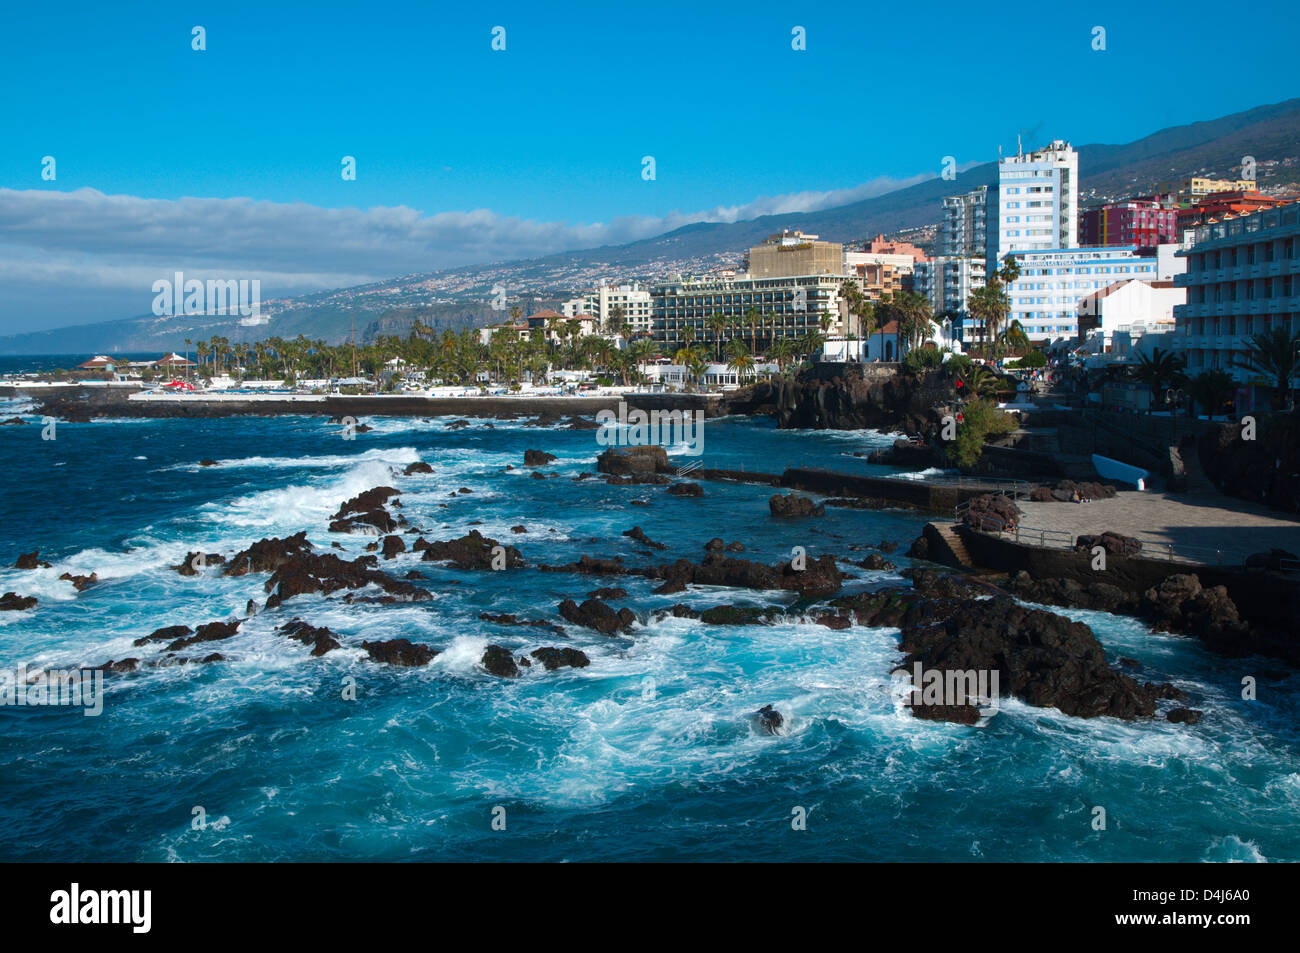 Playa san telmo beach puerto de la cruz city tenerife island the stock photo royalty free image - Hotel san telmo puerto de la cruz tenerife ...